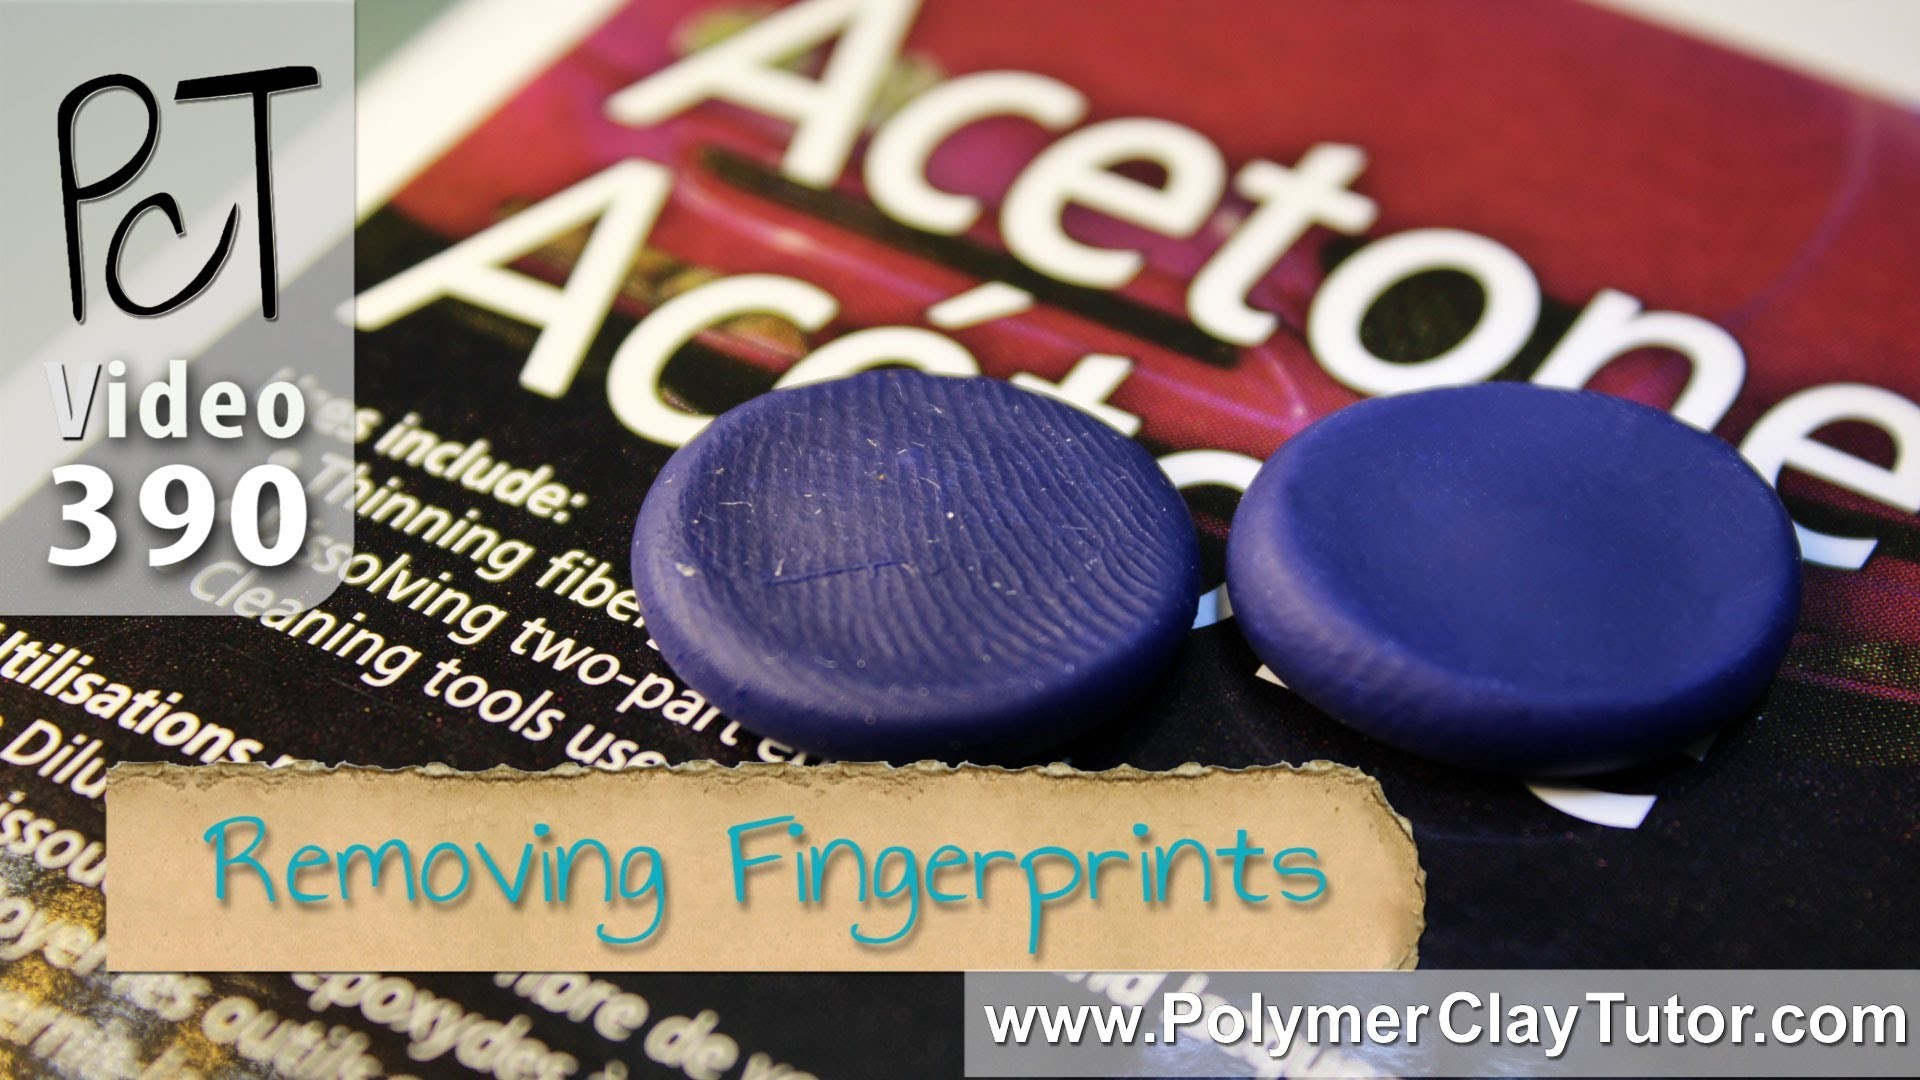 How To Remove Fingerprints From Polymer Clay Using Acetone